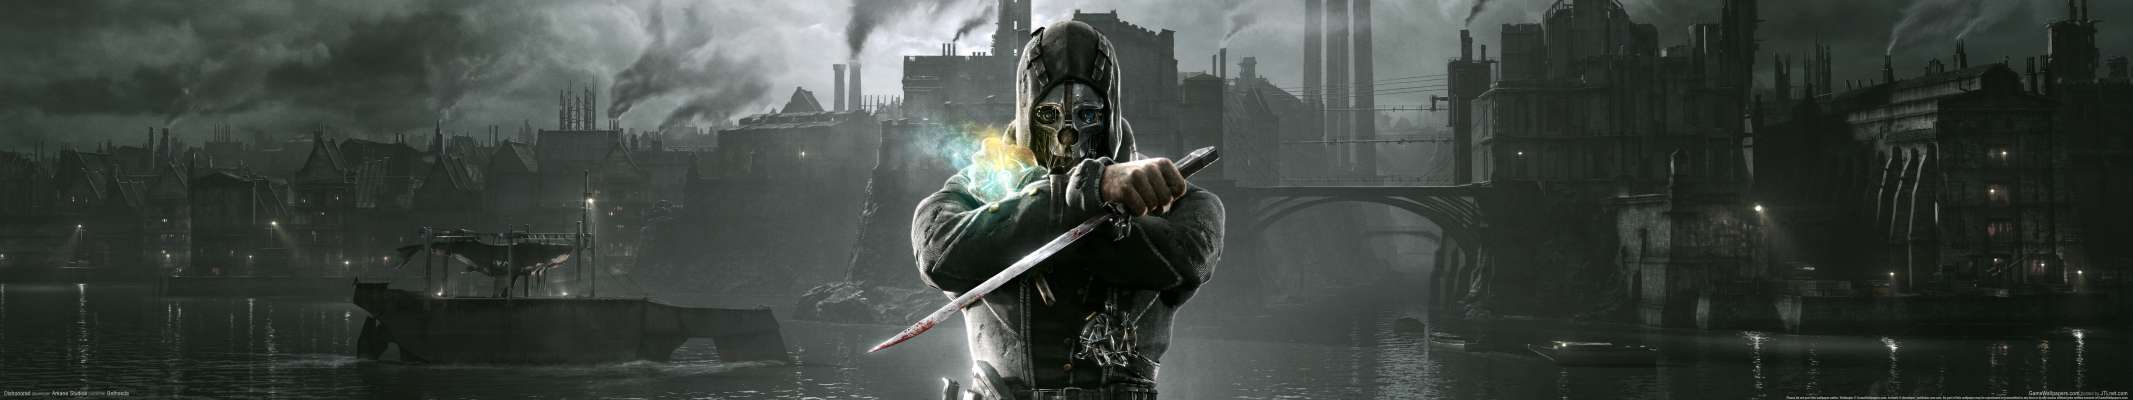 Dishonored triple screen wallpaper or background